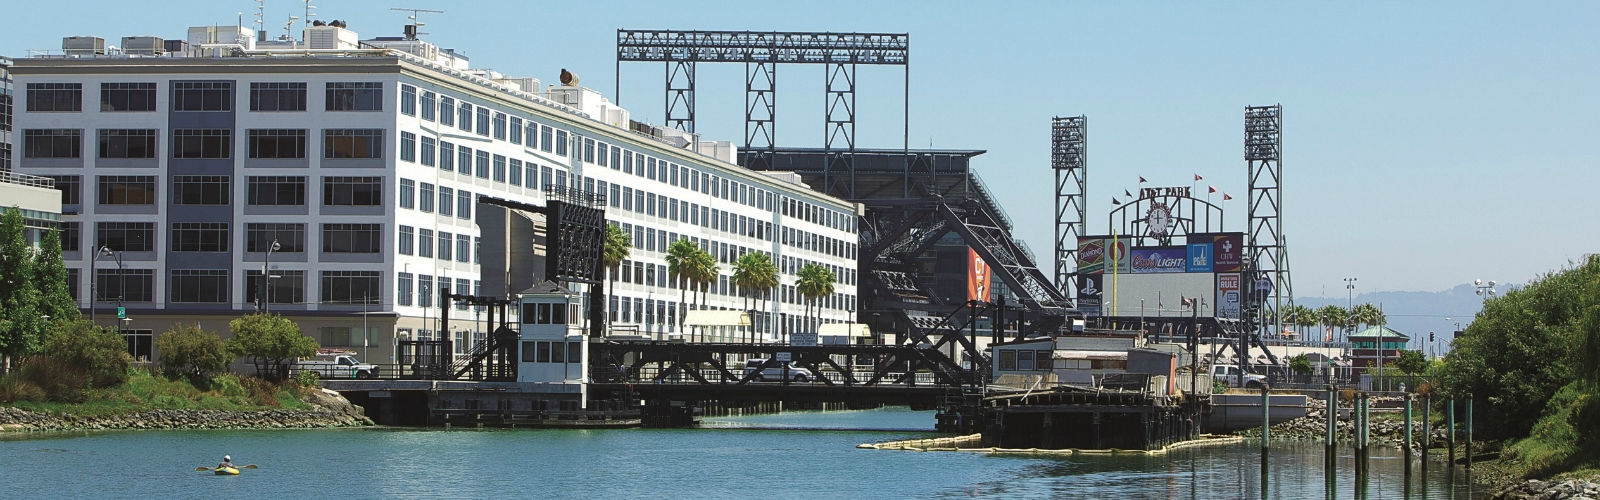 Hotels Near AT&T Park - AT&T Park